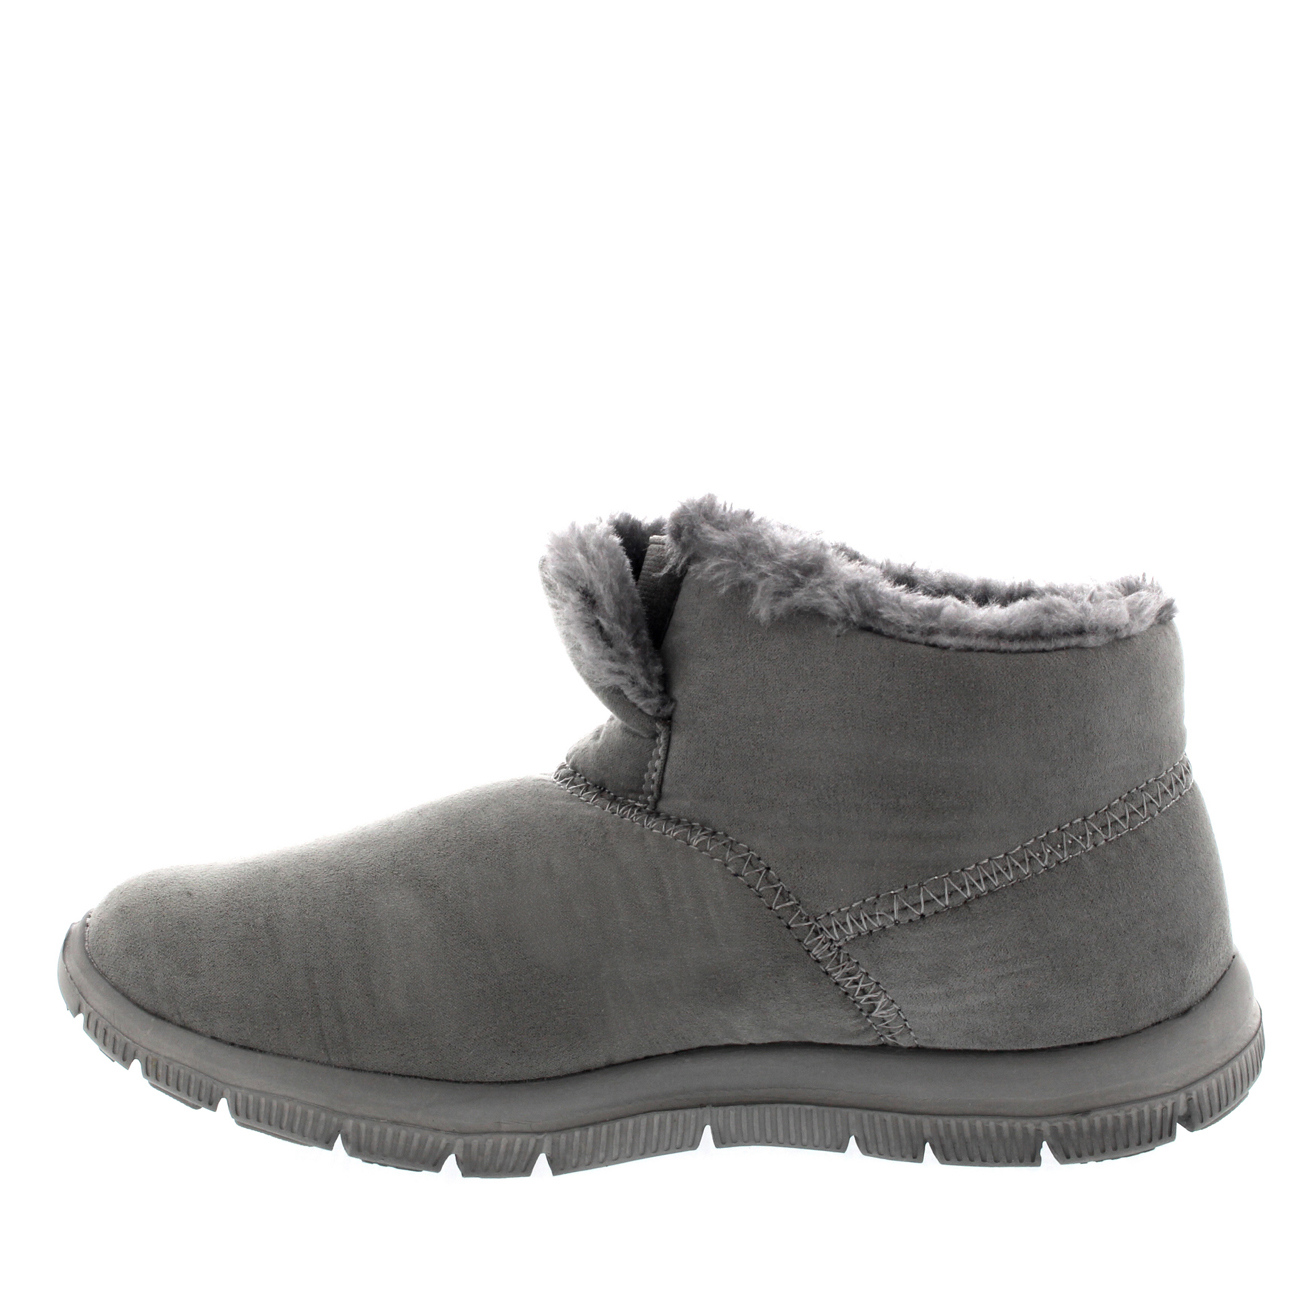 womens warm fur shoes winter slip on casual ankle boot